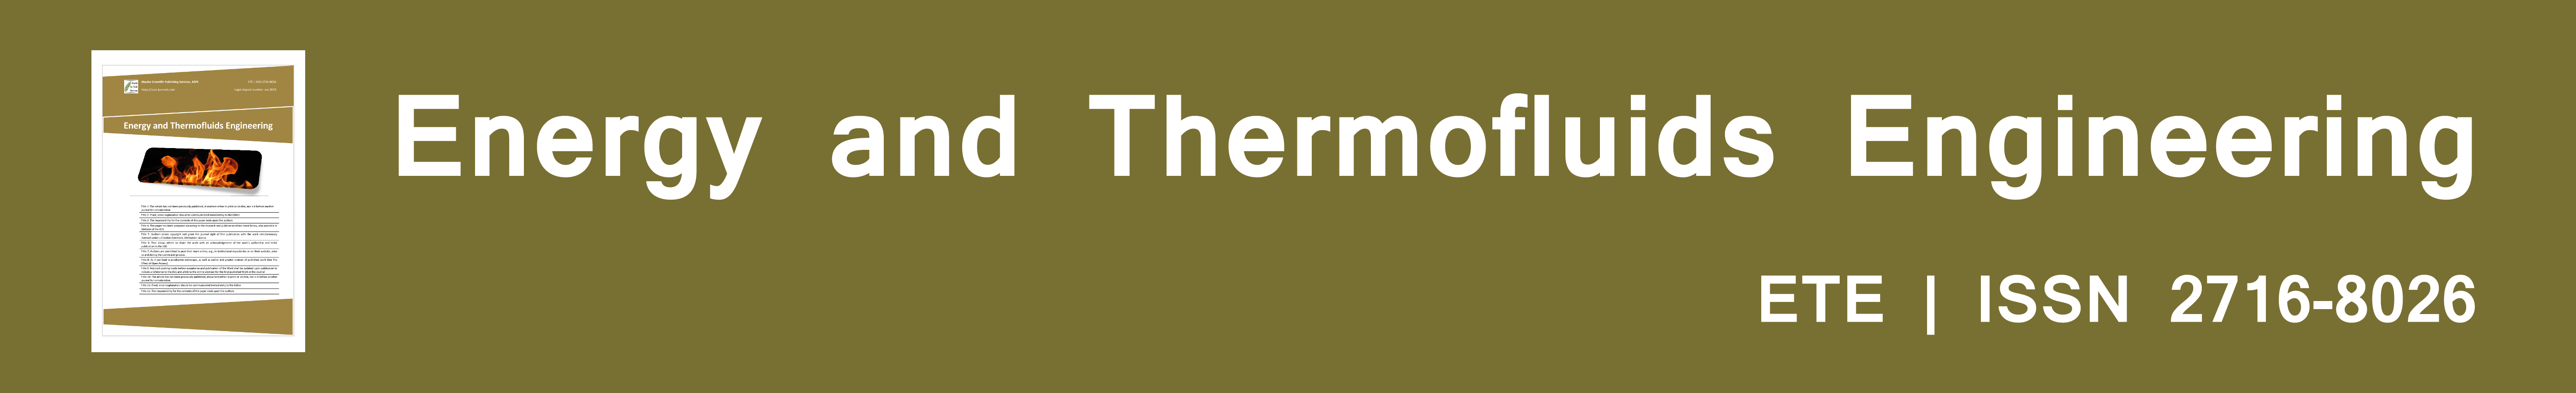 Energy and Thermofluids Engineering (ETE)